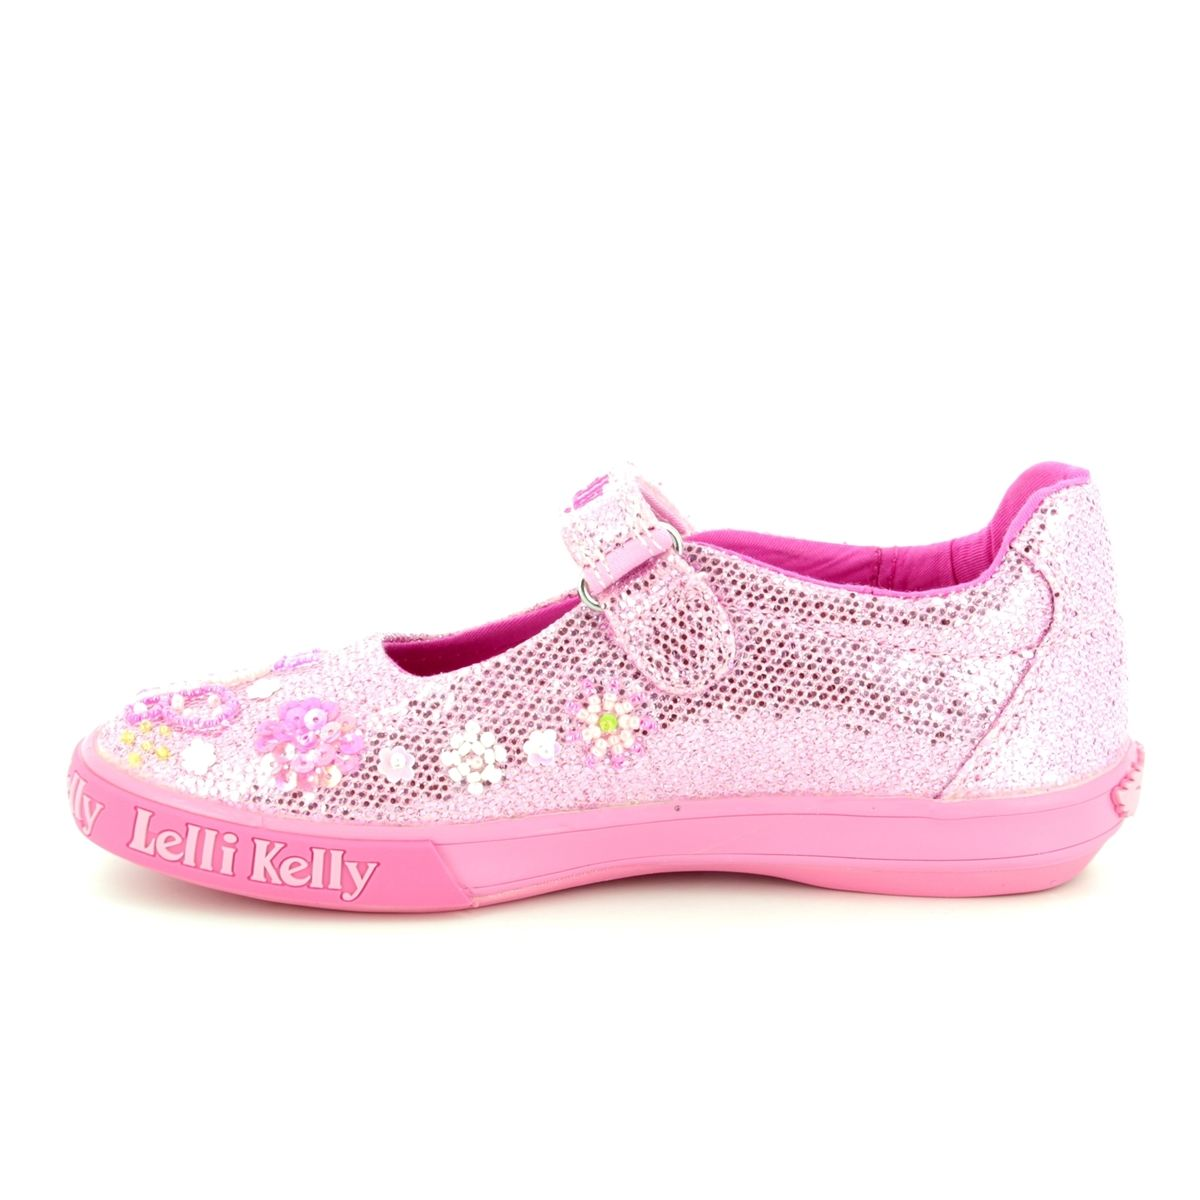 ae2b73848593a Lelli Kelly Everyday Shoes - Pink multi - LK5076/GC01 BUTTERFLY